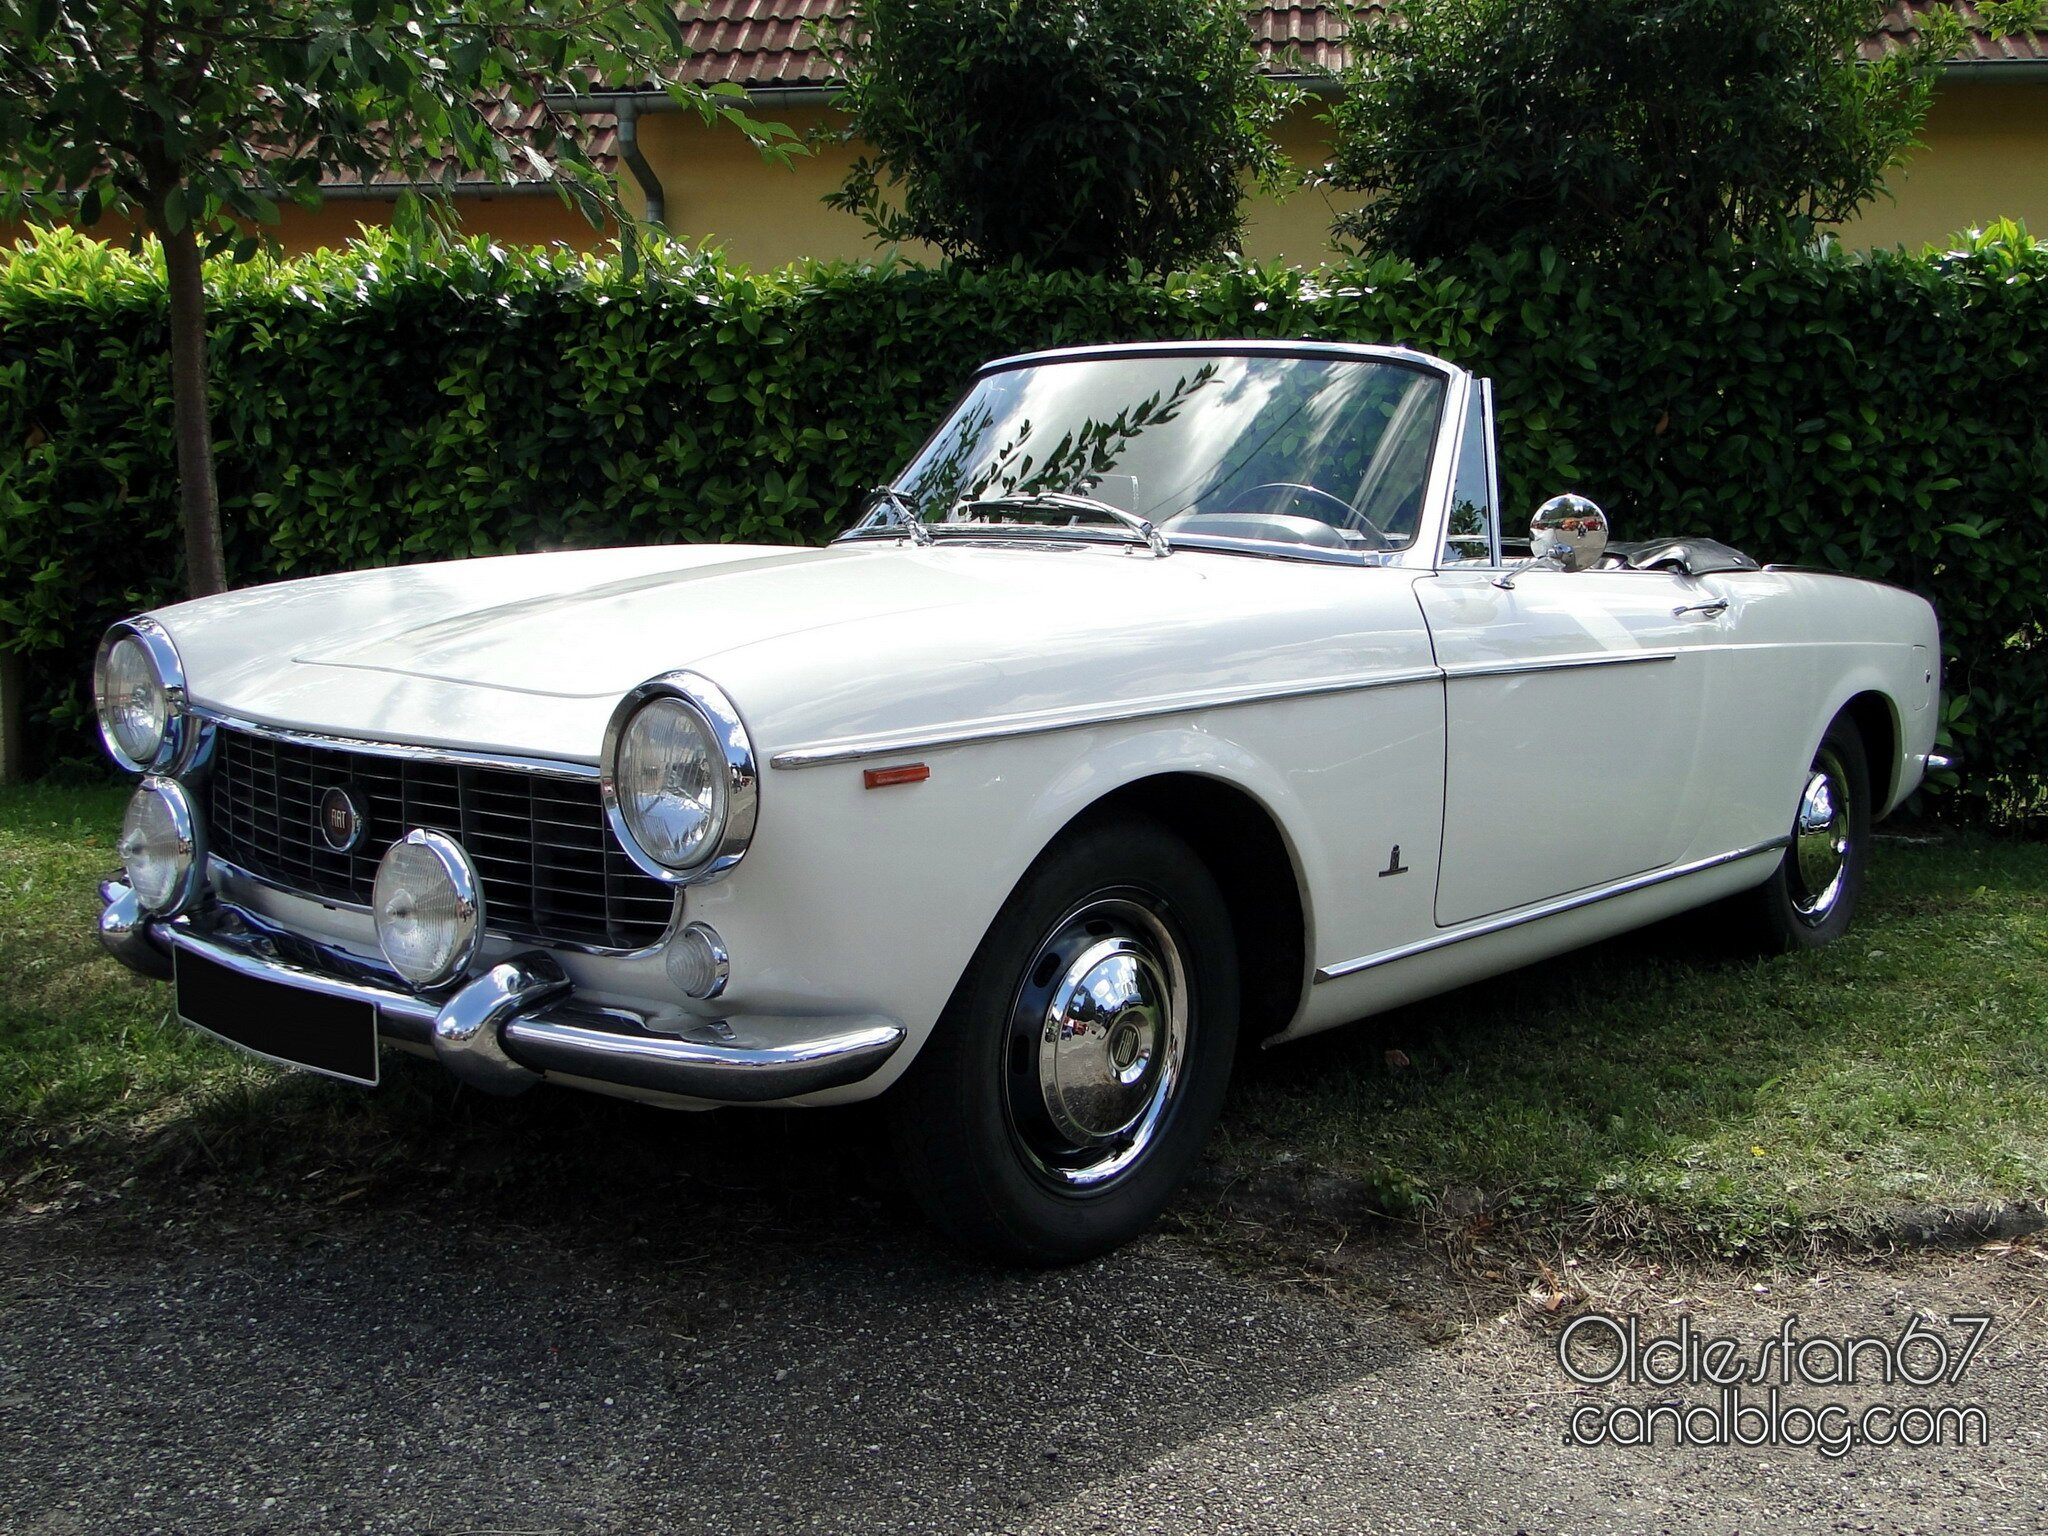 fiat 1500 cabriolet 1963 1965 oldiesfan67 mon blog auto. Black Bedroom Furniture Sets. Home Design Ideas